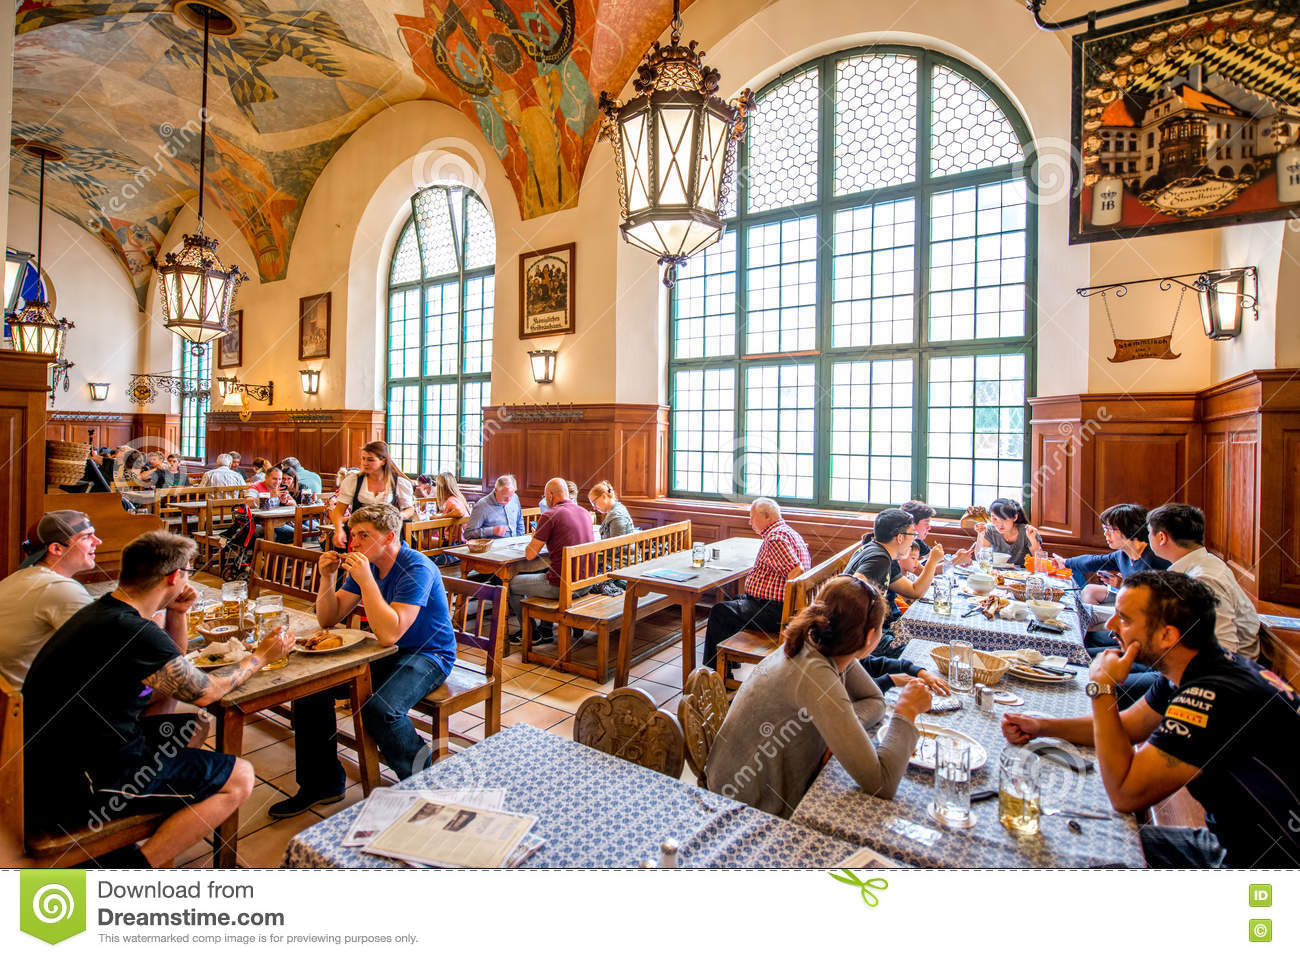 hofbrauhaus interior in munich editorial stock image image 79320934. Black Bedroom Furniture Sets. Home Design Ideas